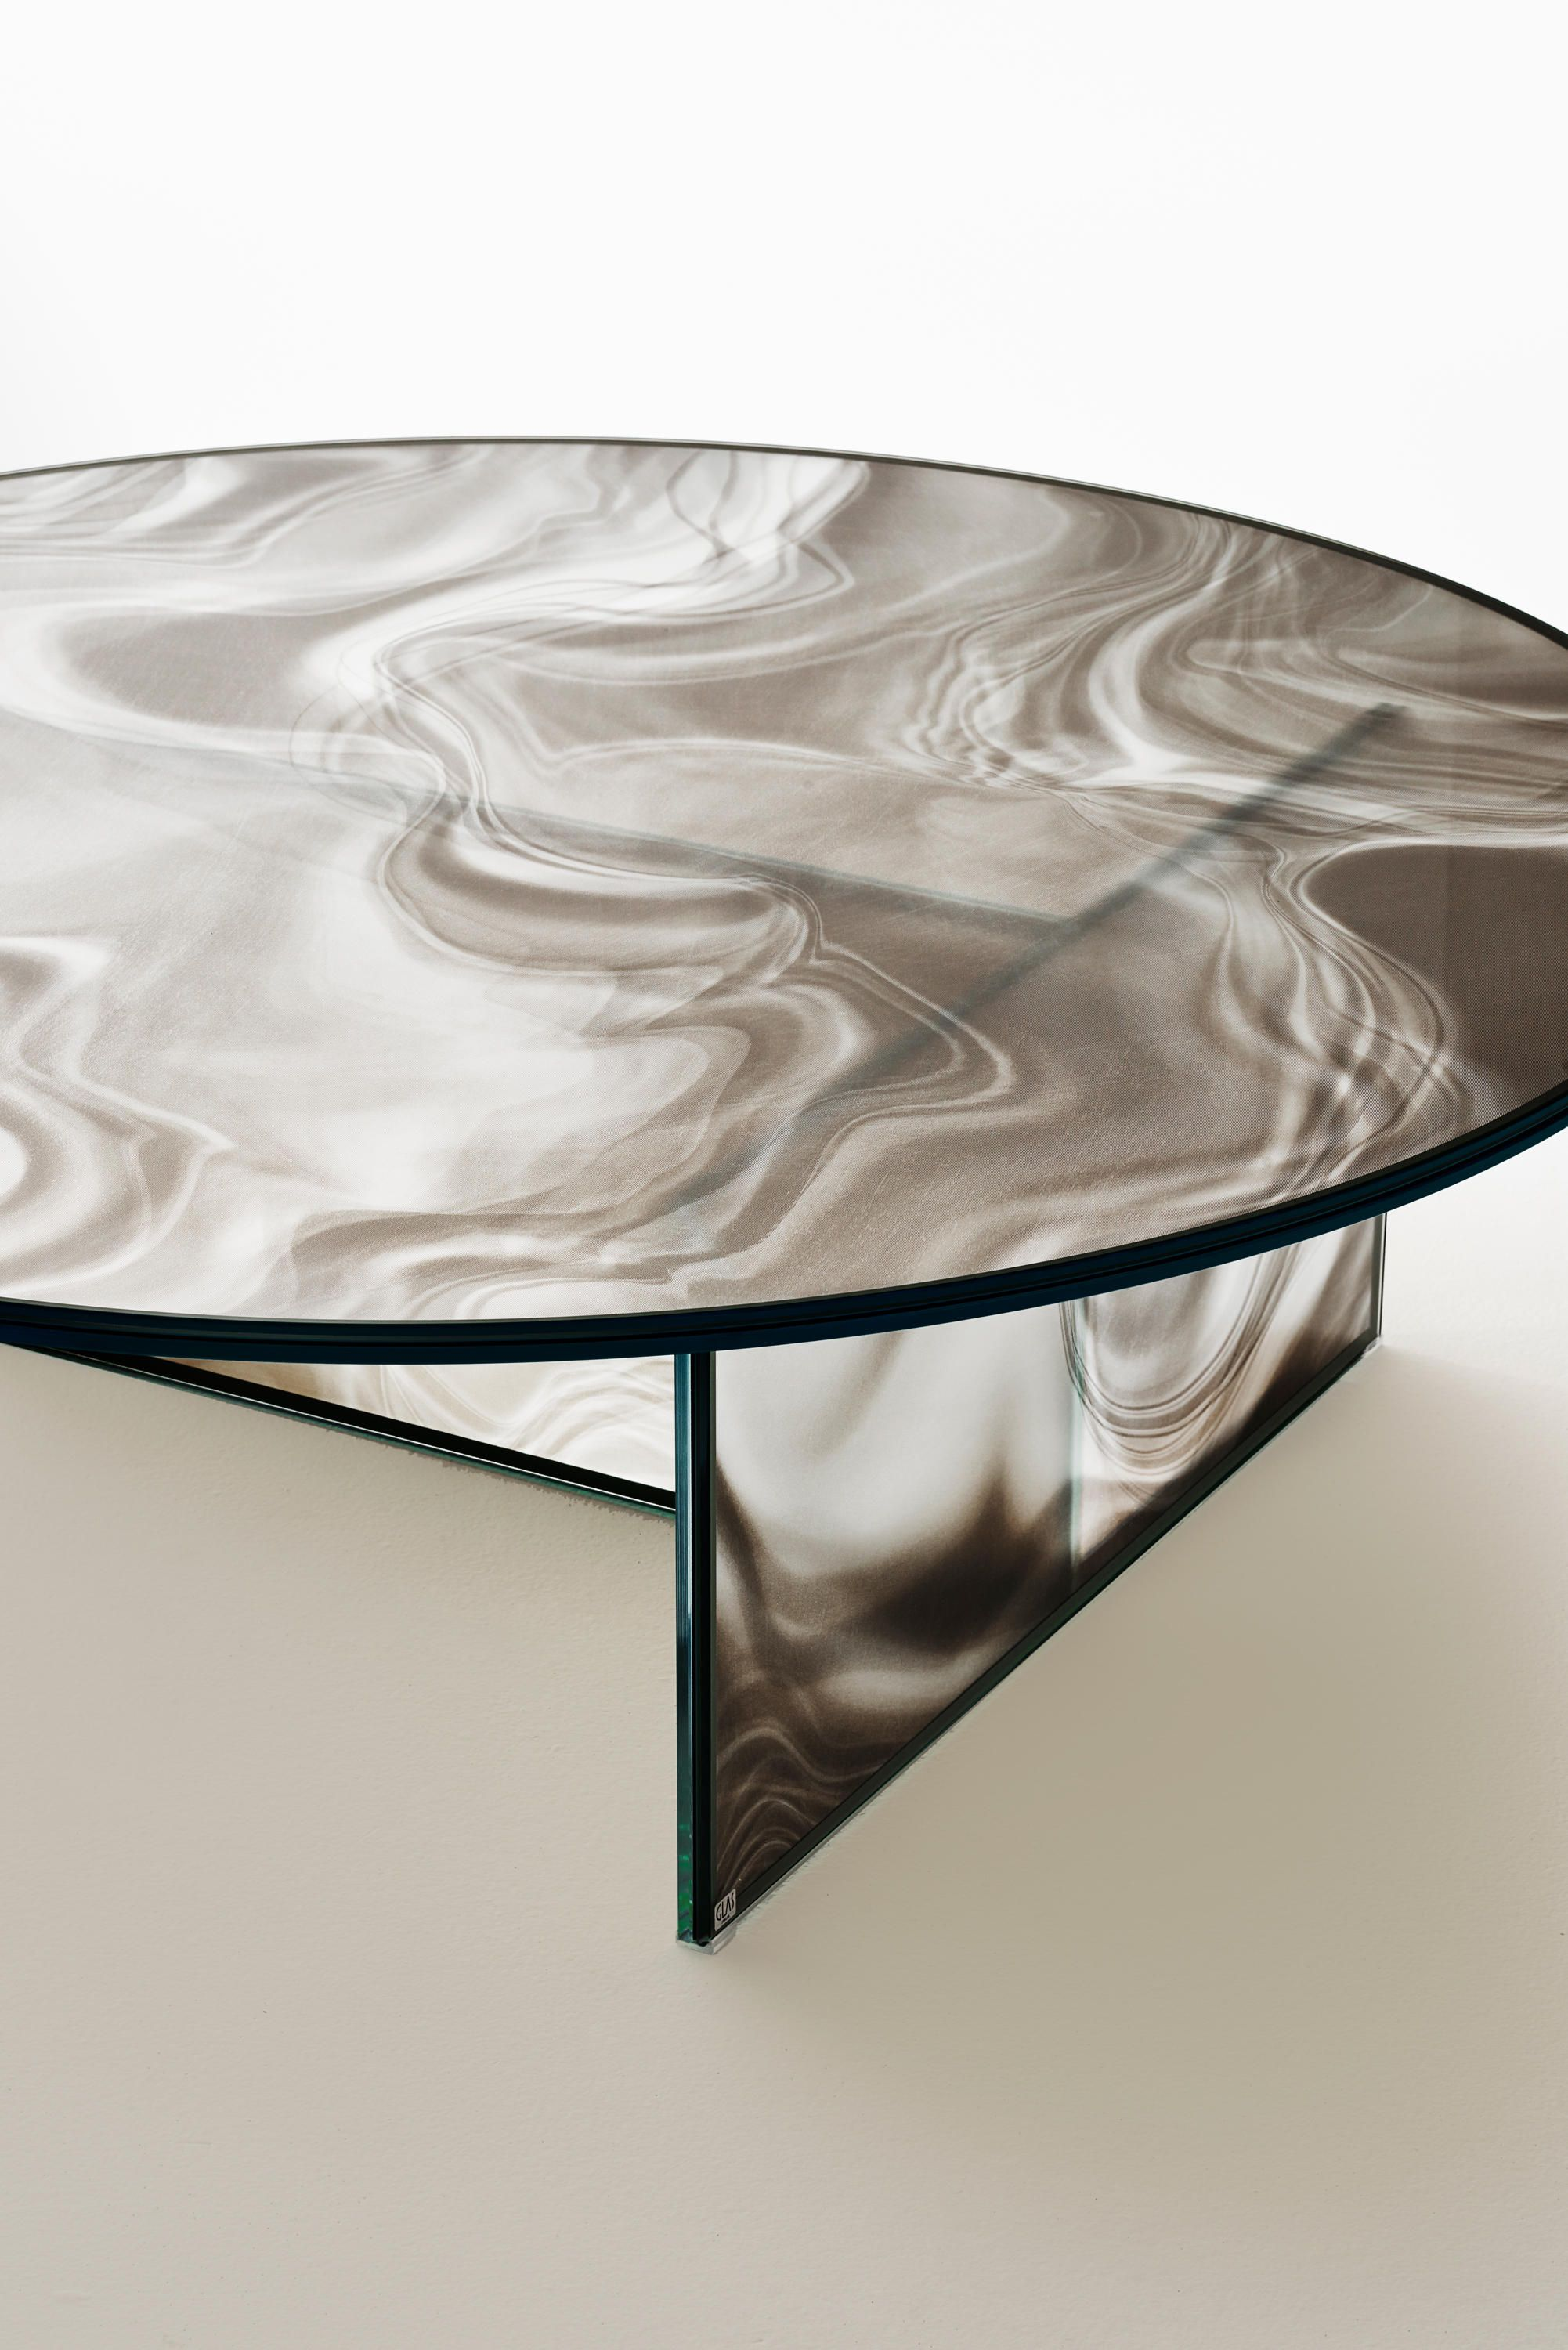 - LIQUEFY - Designer Coffee Tables From Glas Italia ✓ All